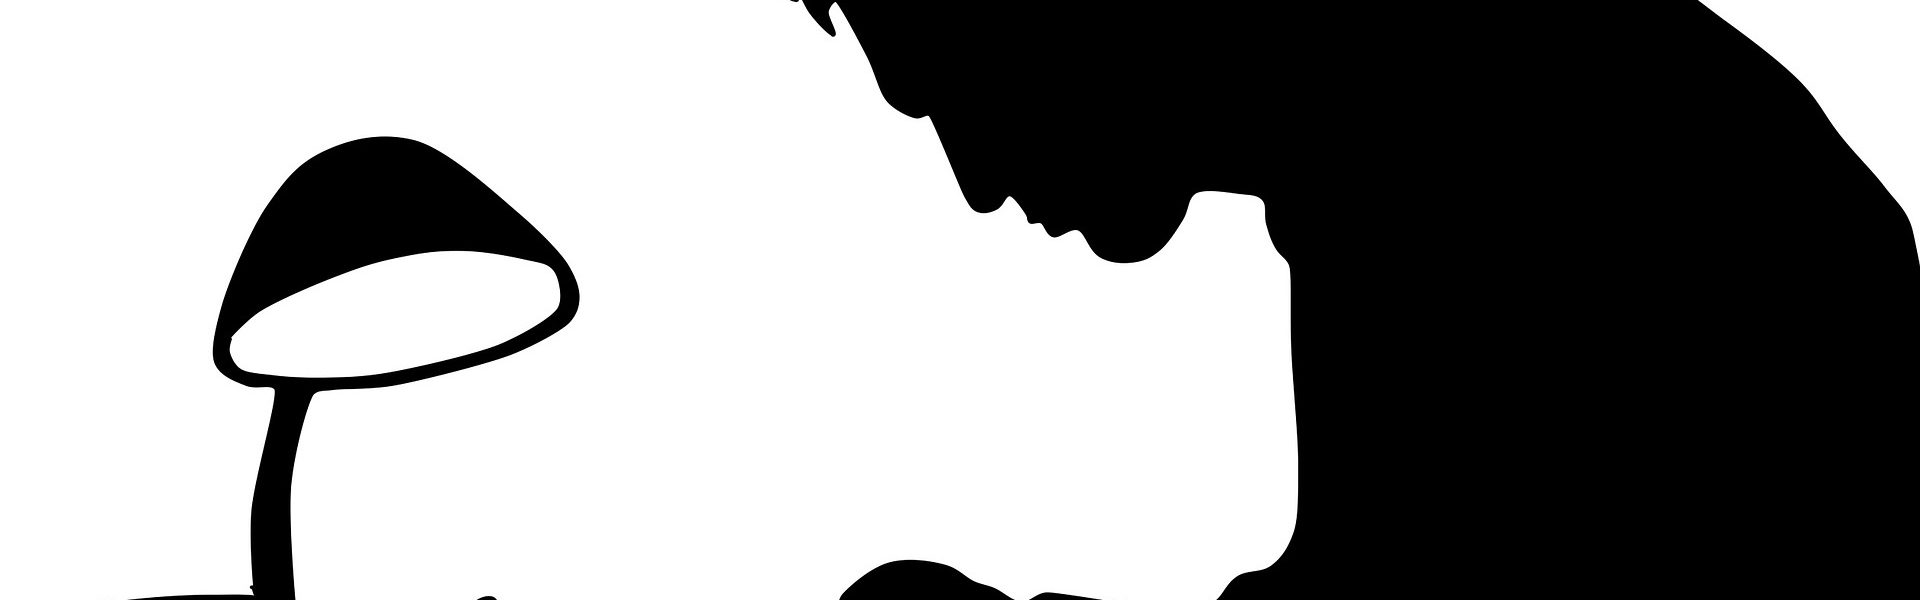 Writer silhouette at getdrawings free for personal use writer 1920x600 do you call yourself a writer writing through life solutioingenieria Images